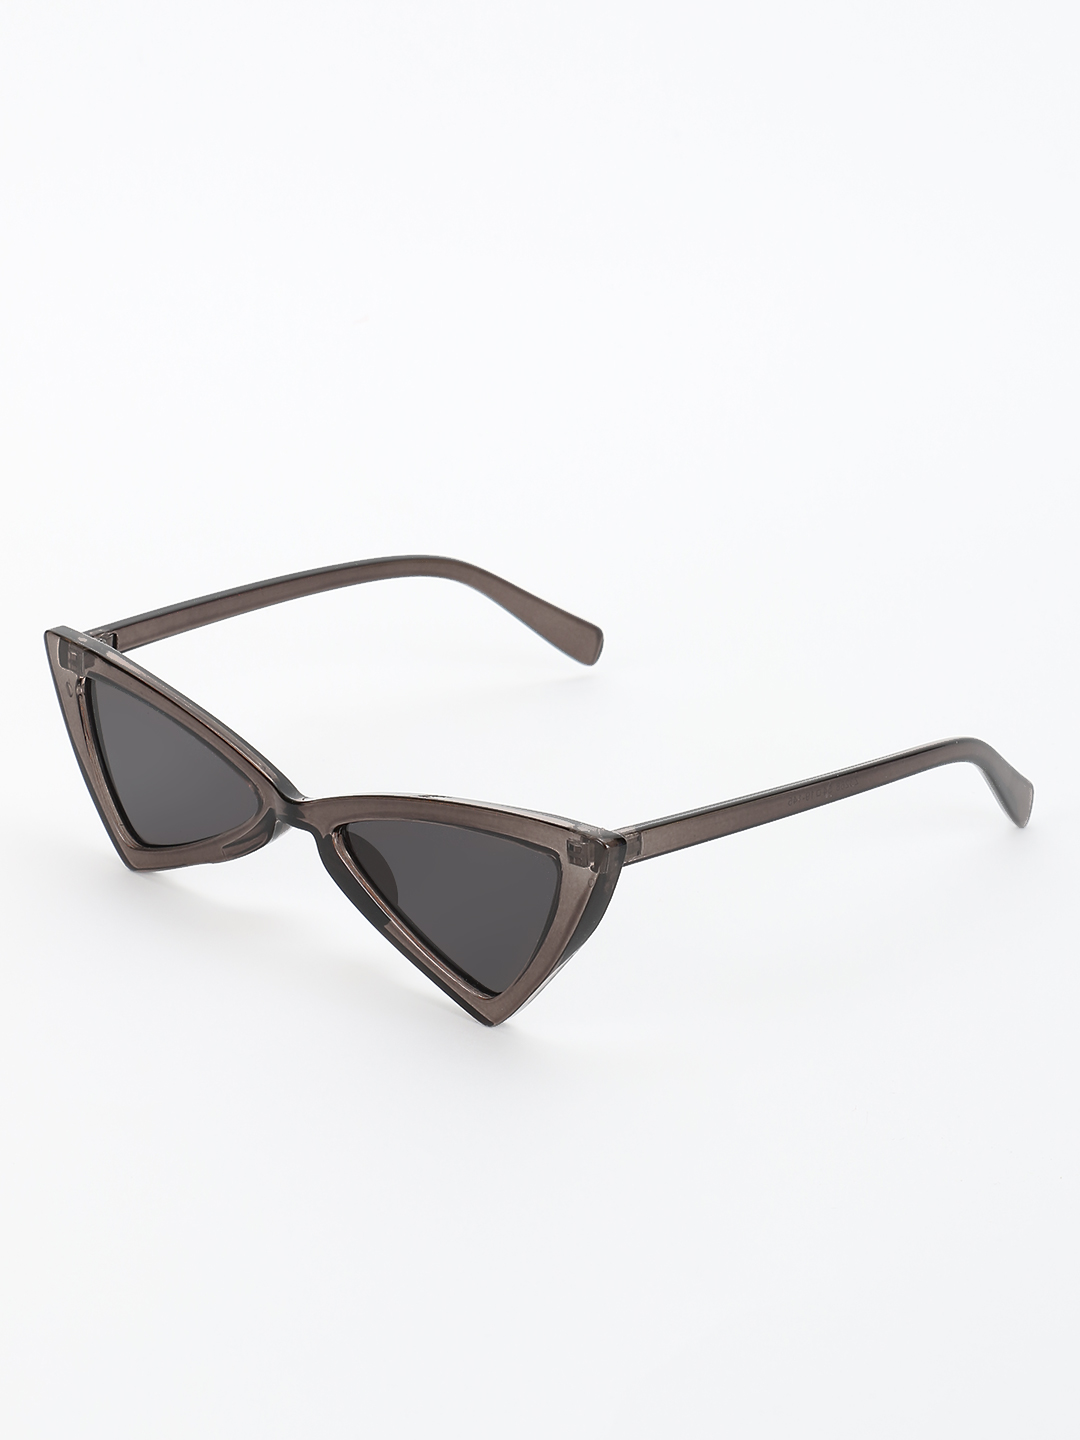 Style Fiesta Brown Coloured Lens Cateye Sunglasses 1